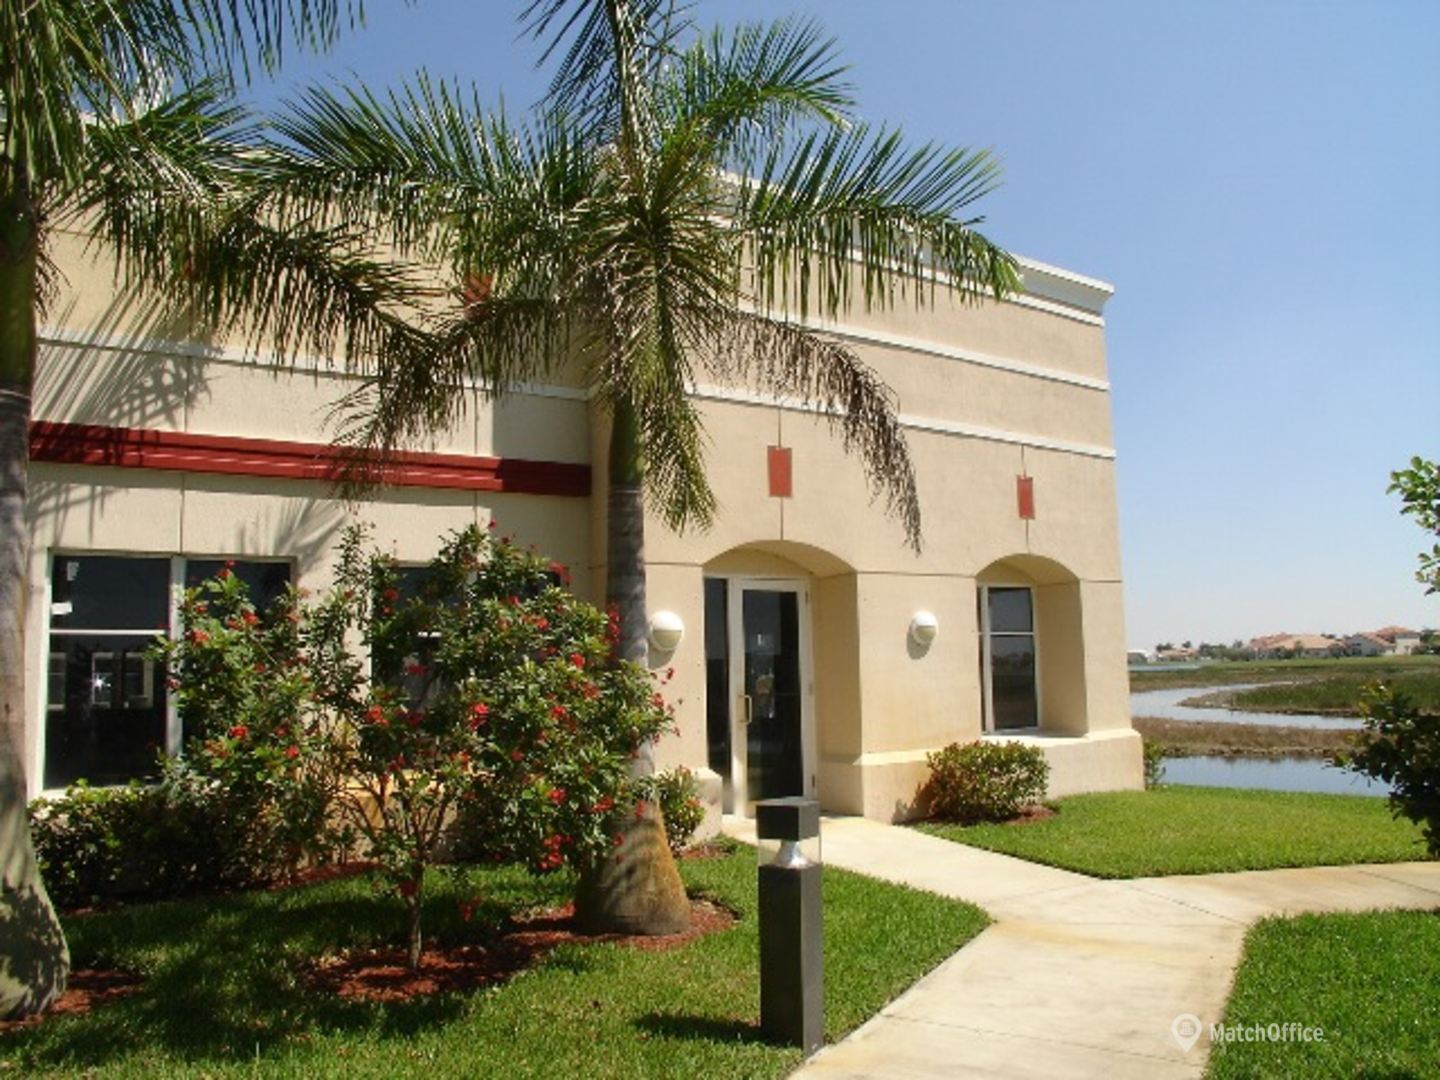 Pembroke Pines, NW 150 Ave